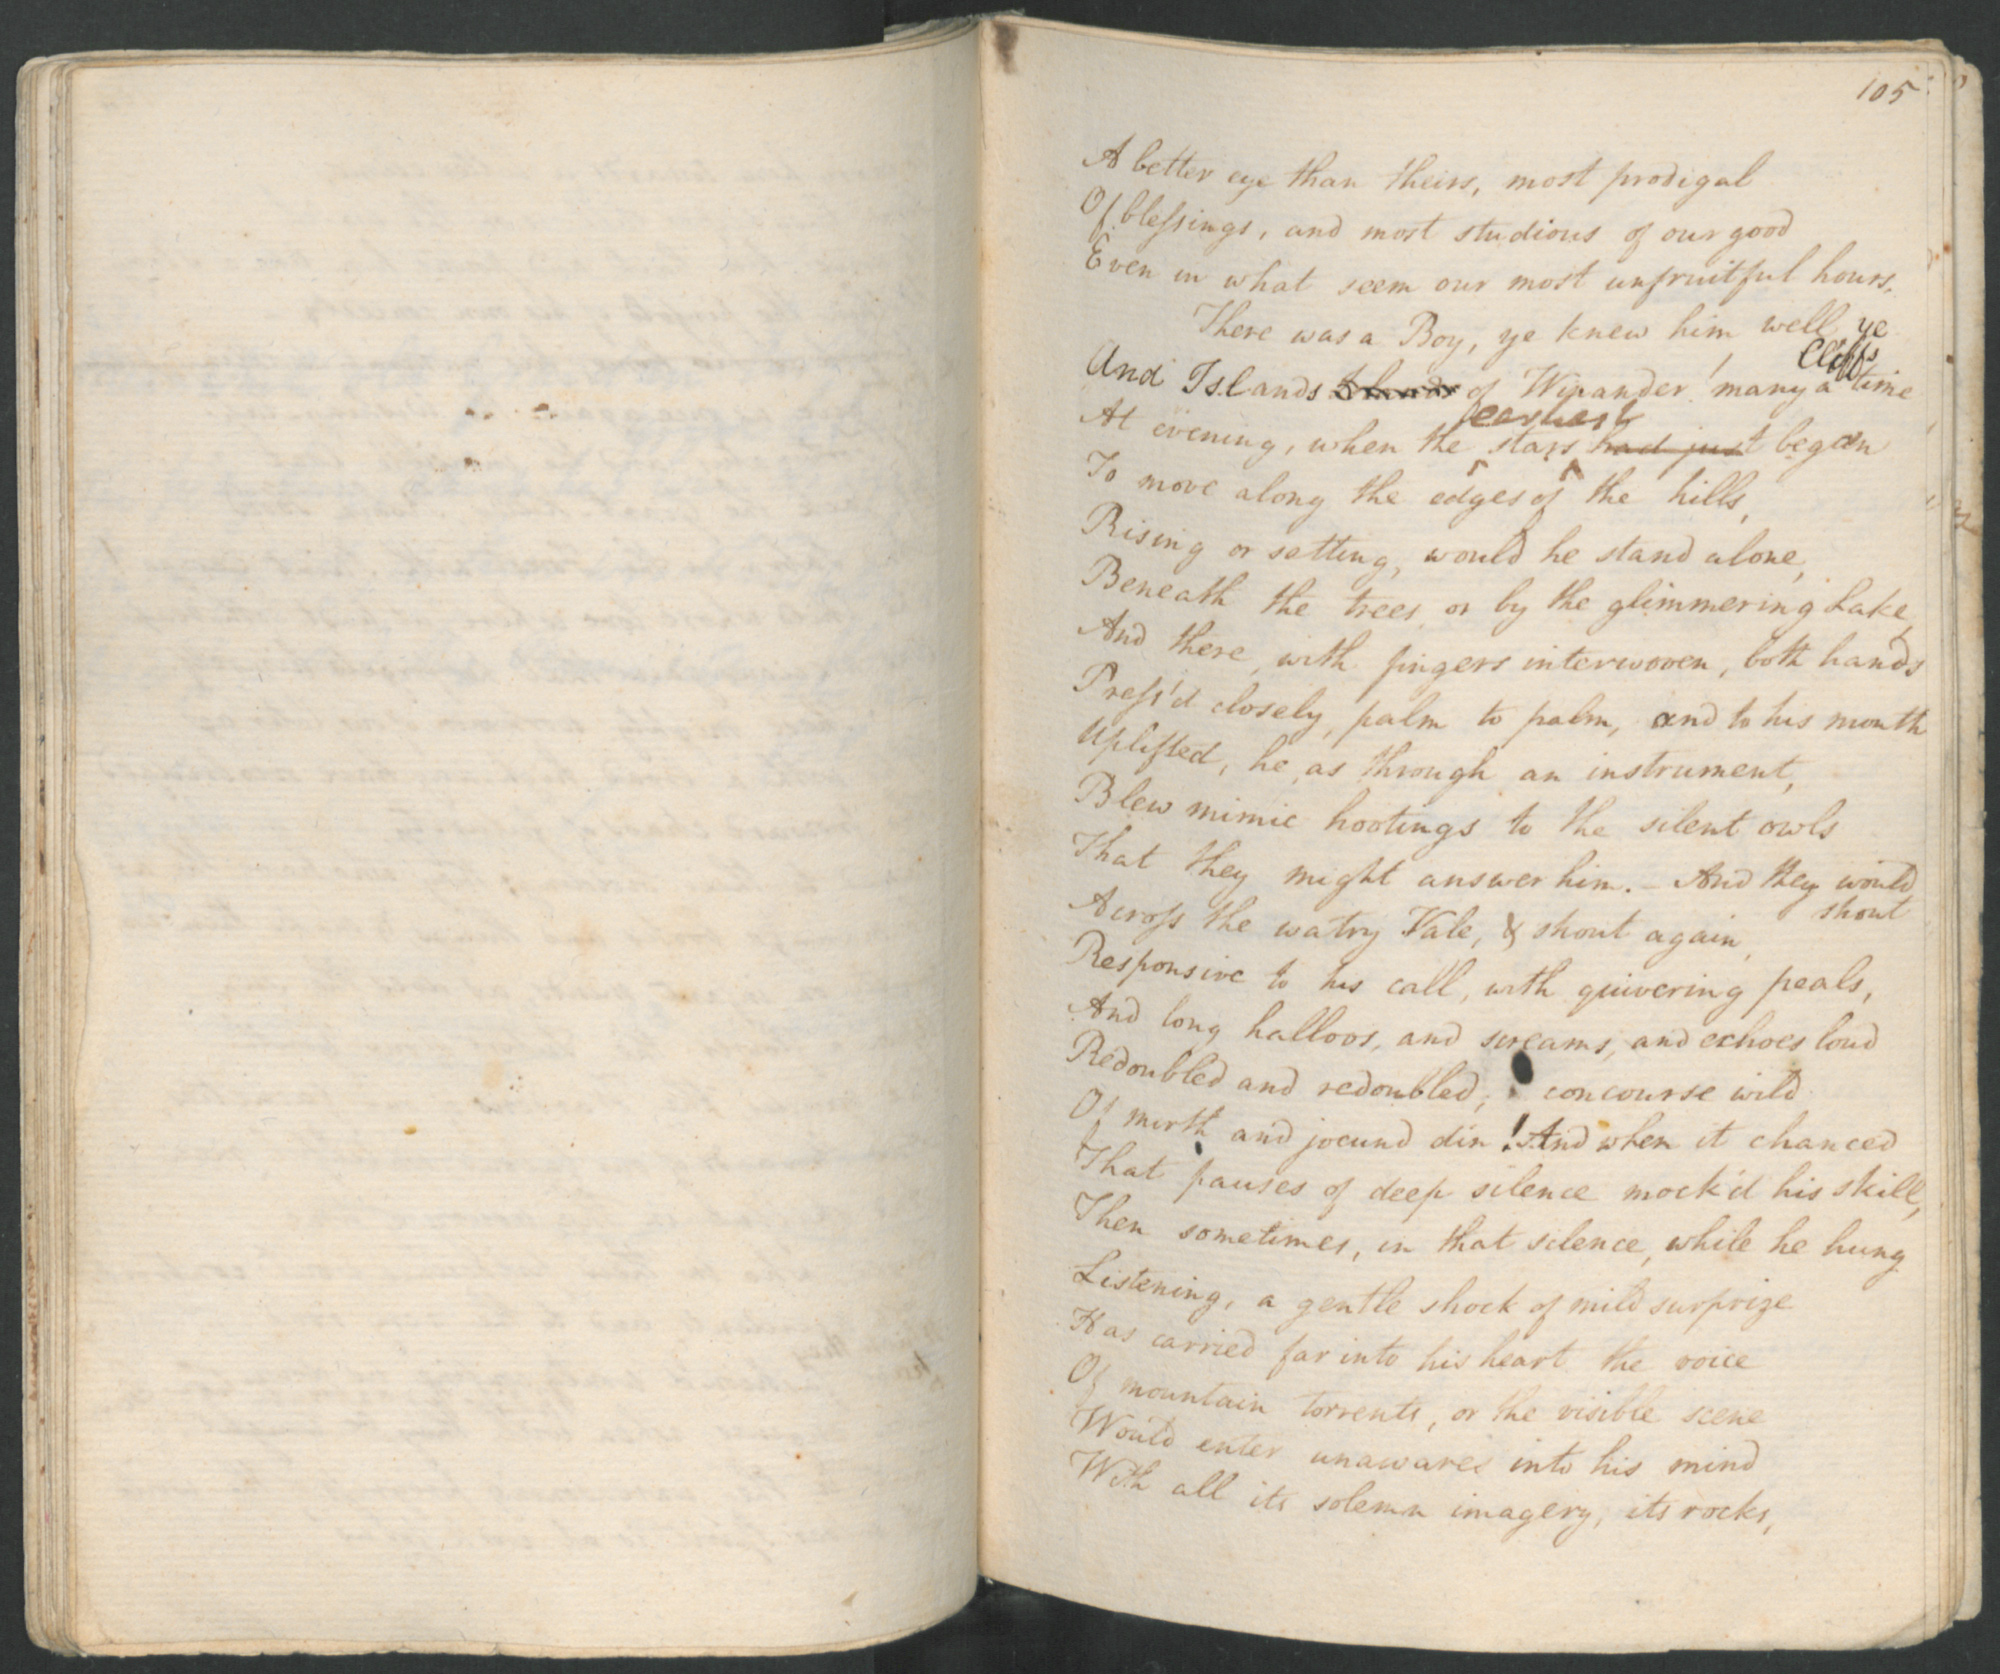 Manuscript of The Prelude by William Wordsworth